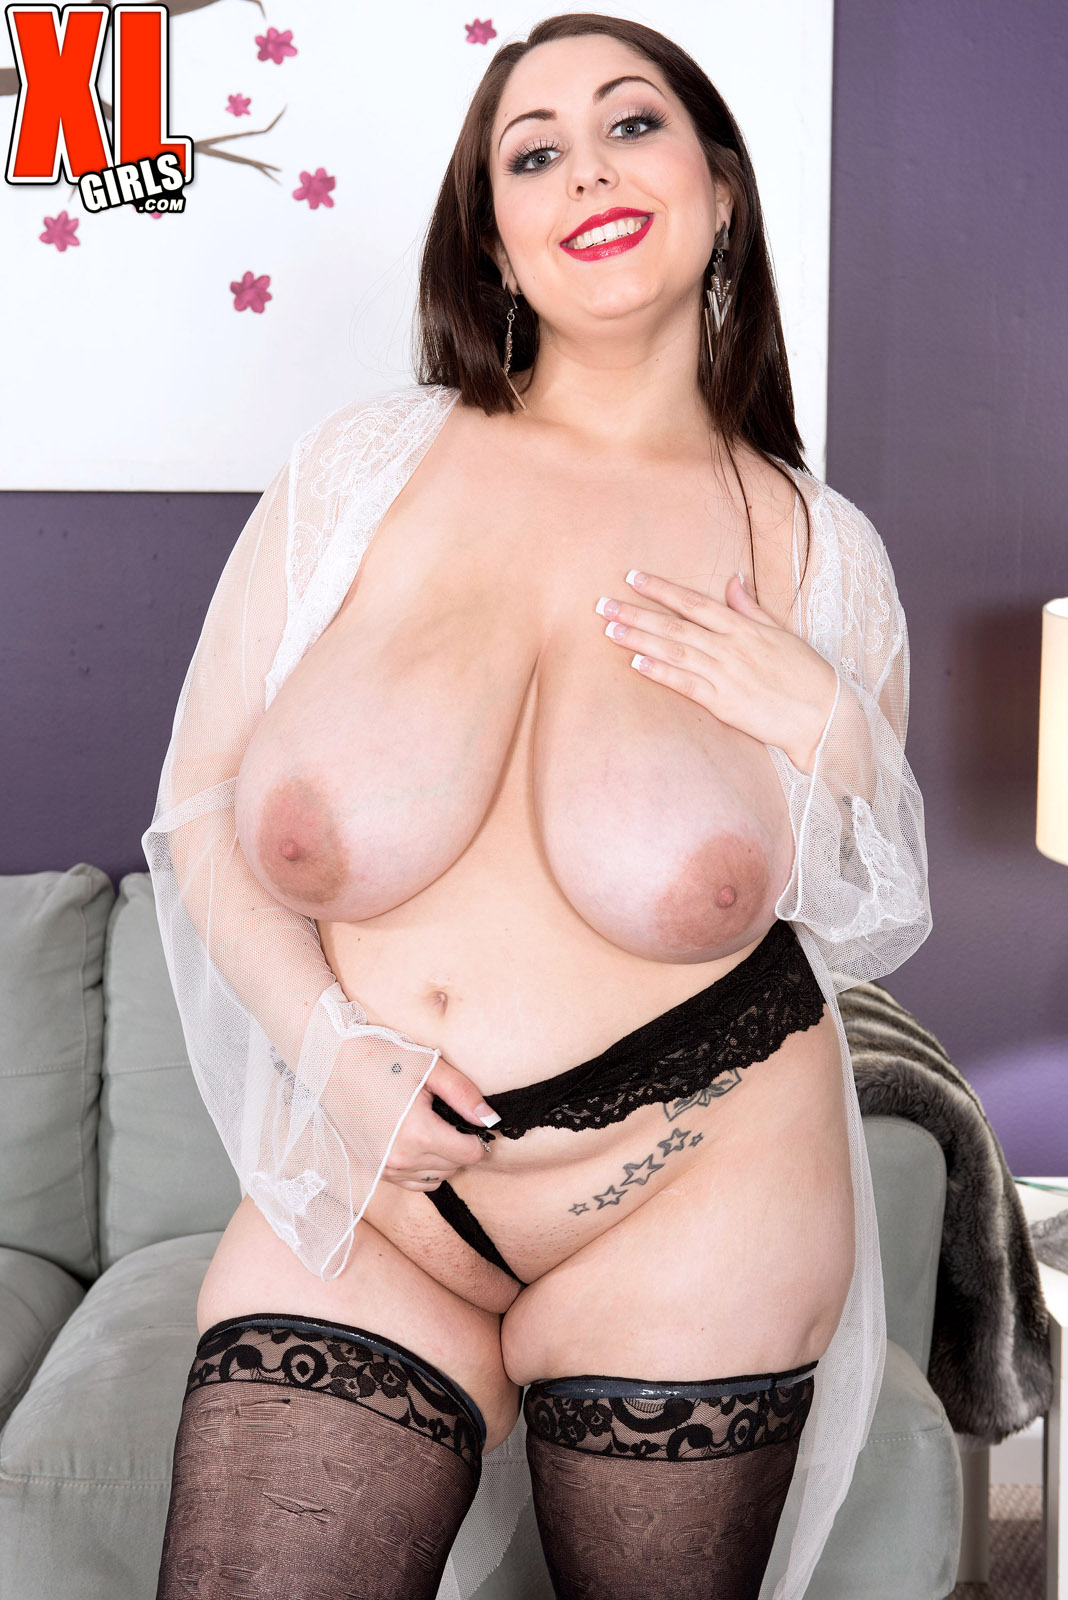 Chubby beauty alexxxis allure gets fucked 9